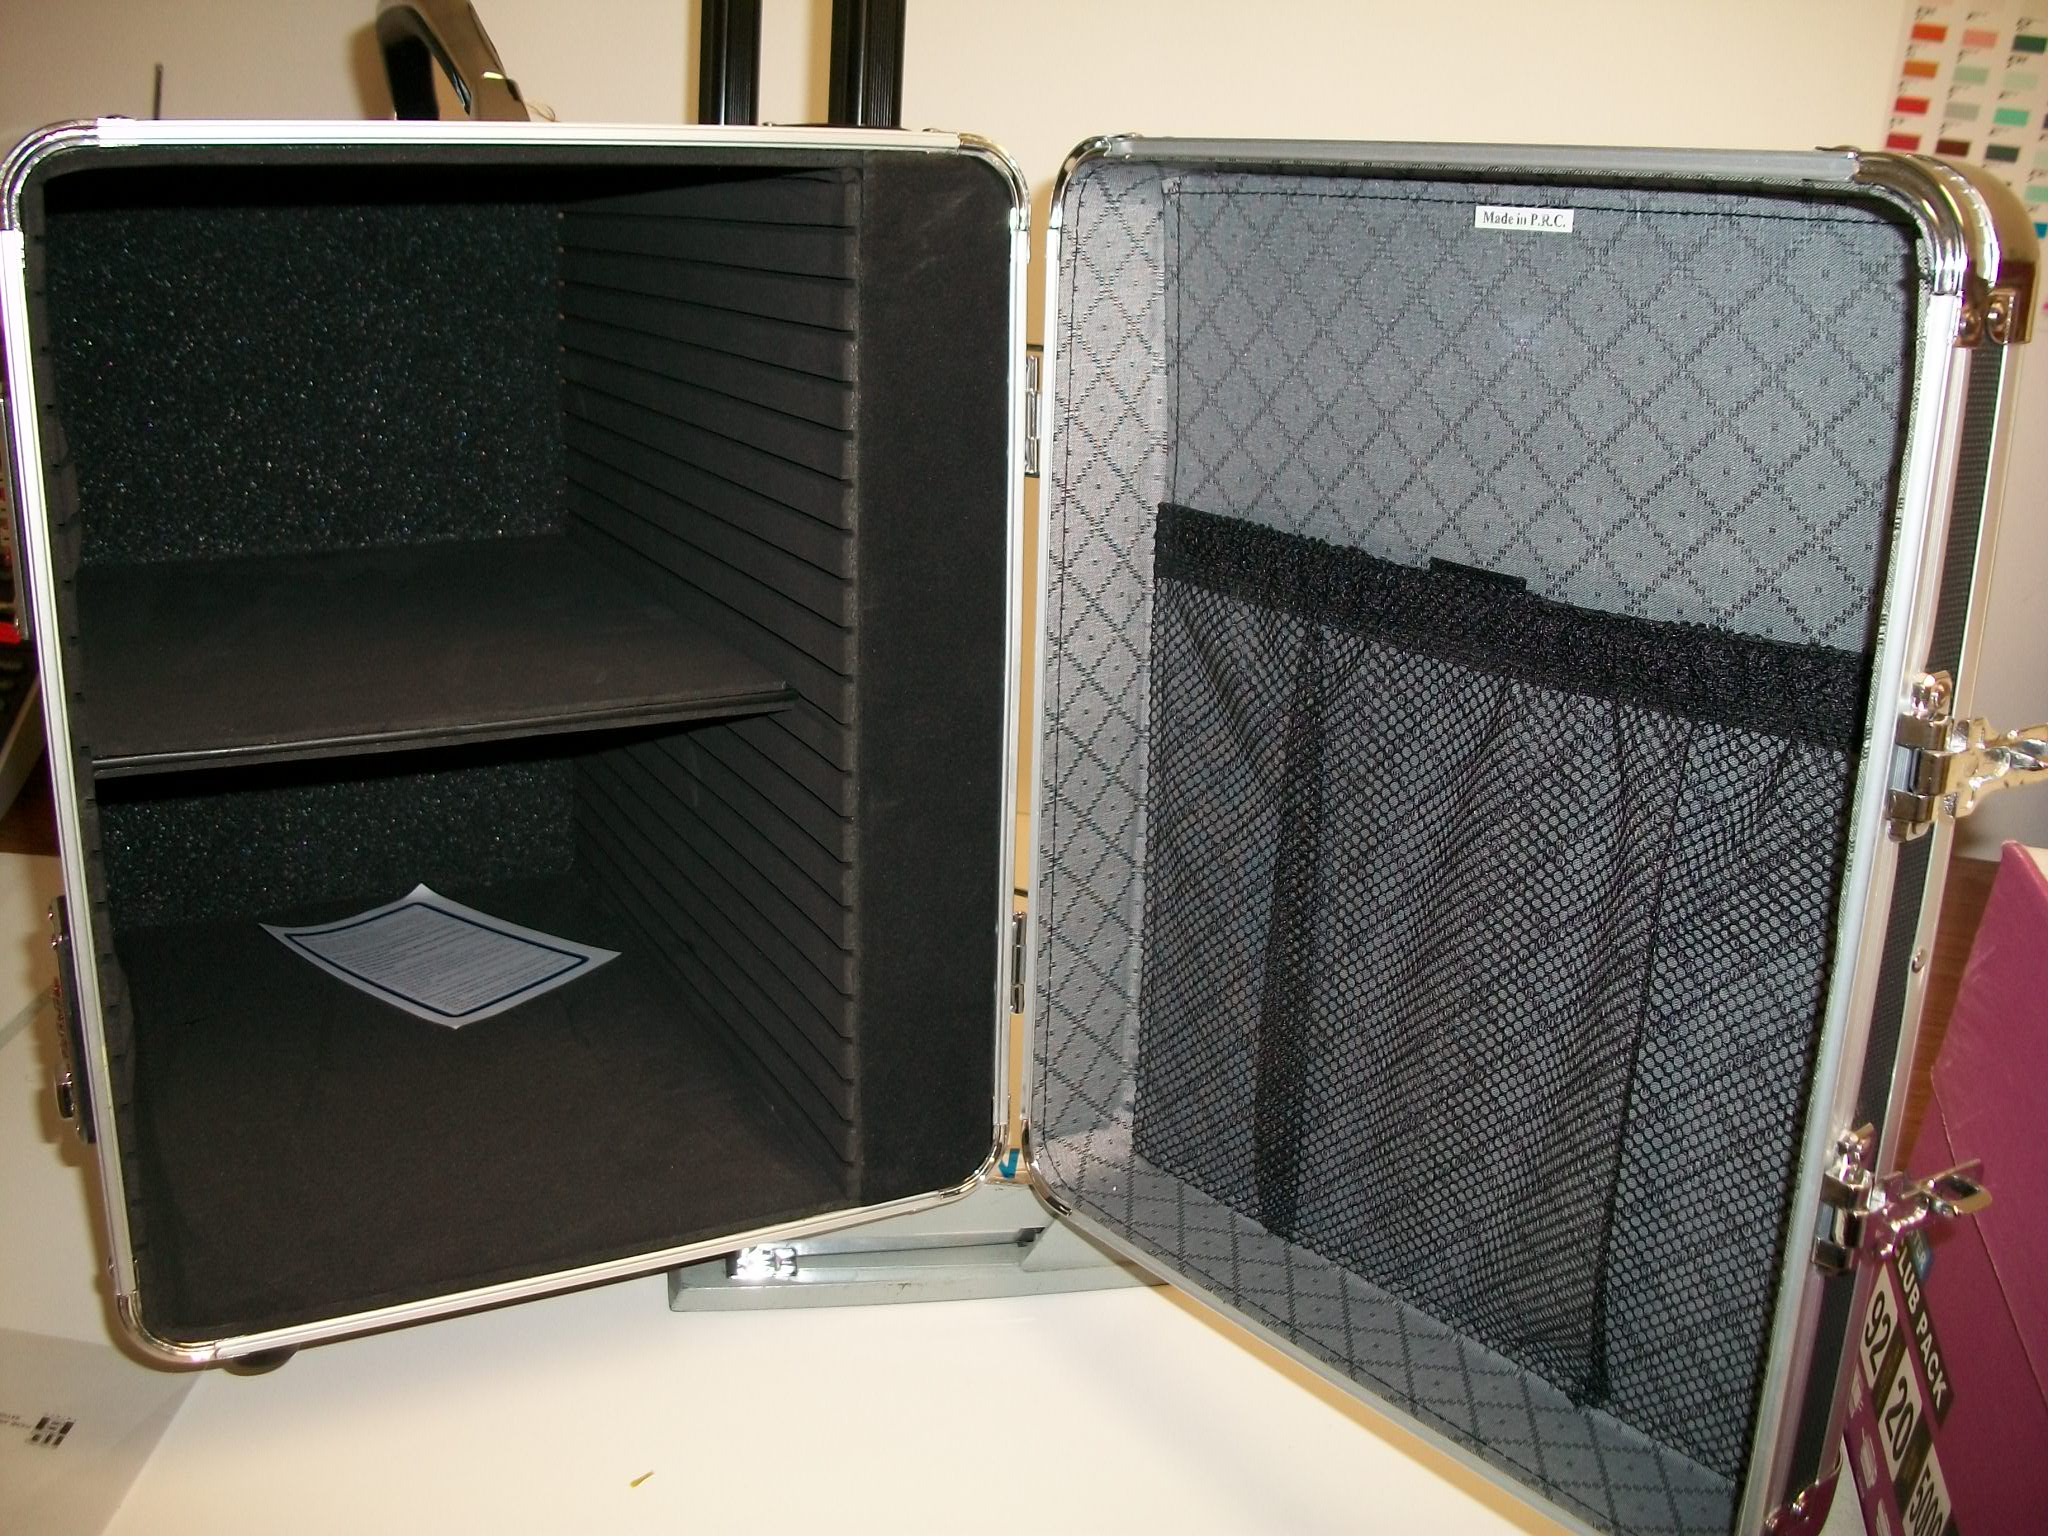 JC861-7B Jewelry Carrying Case on wheels--new item!